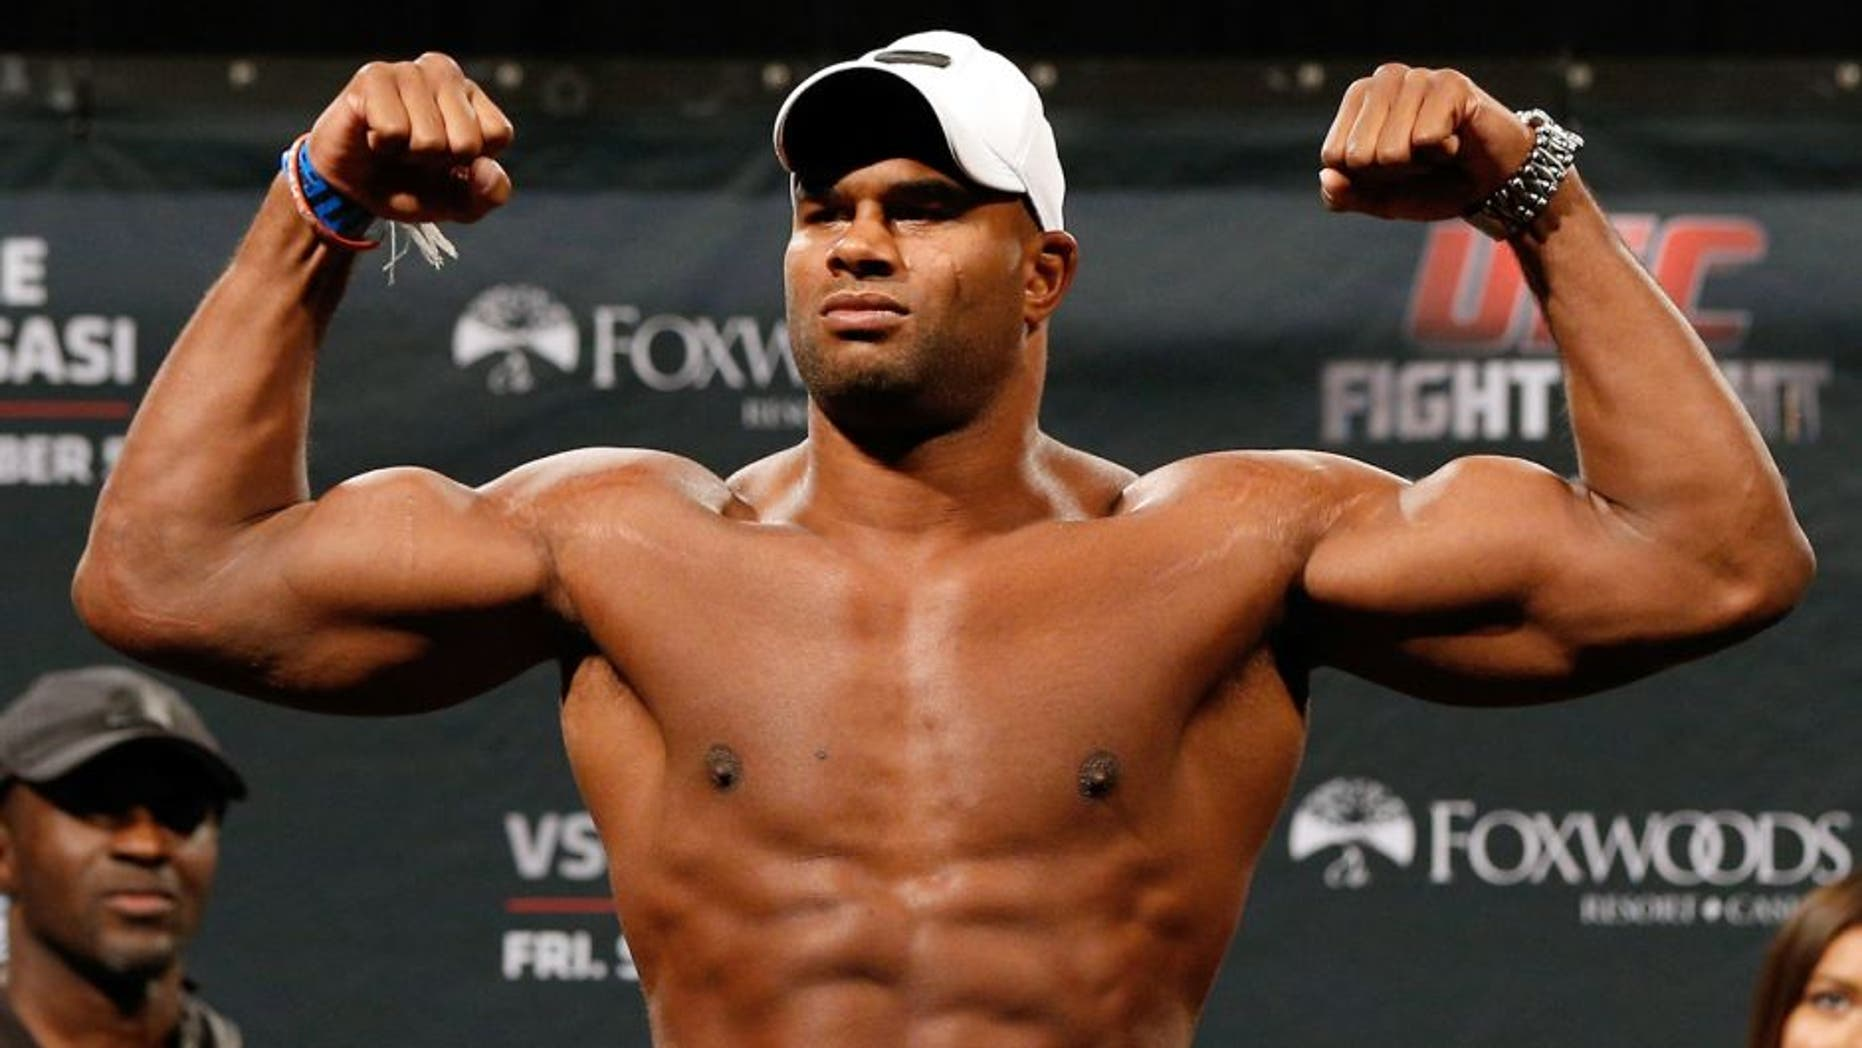 MASHANTUCKET, CT - SEPTEMBER 04: Alistair Overeem of The Netherlands weighs in during the UFC Fight Night weigh-in at Foxwoods Resort Casino on September 4, 2014 in Mashantucket, Connecticut. (Photo by Josh Hedges/Zuffa LLC/Zuffa LLC via Getty Images)